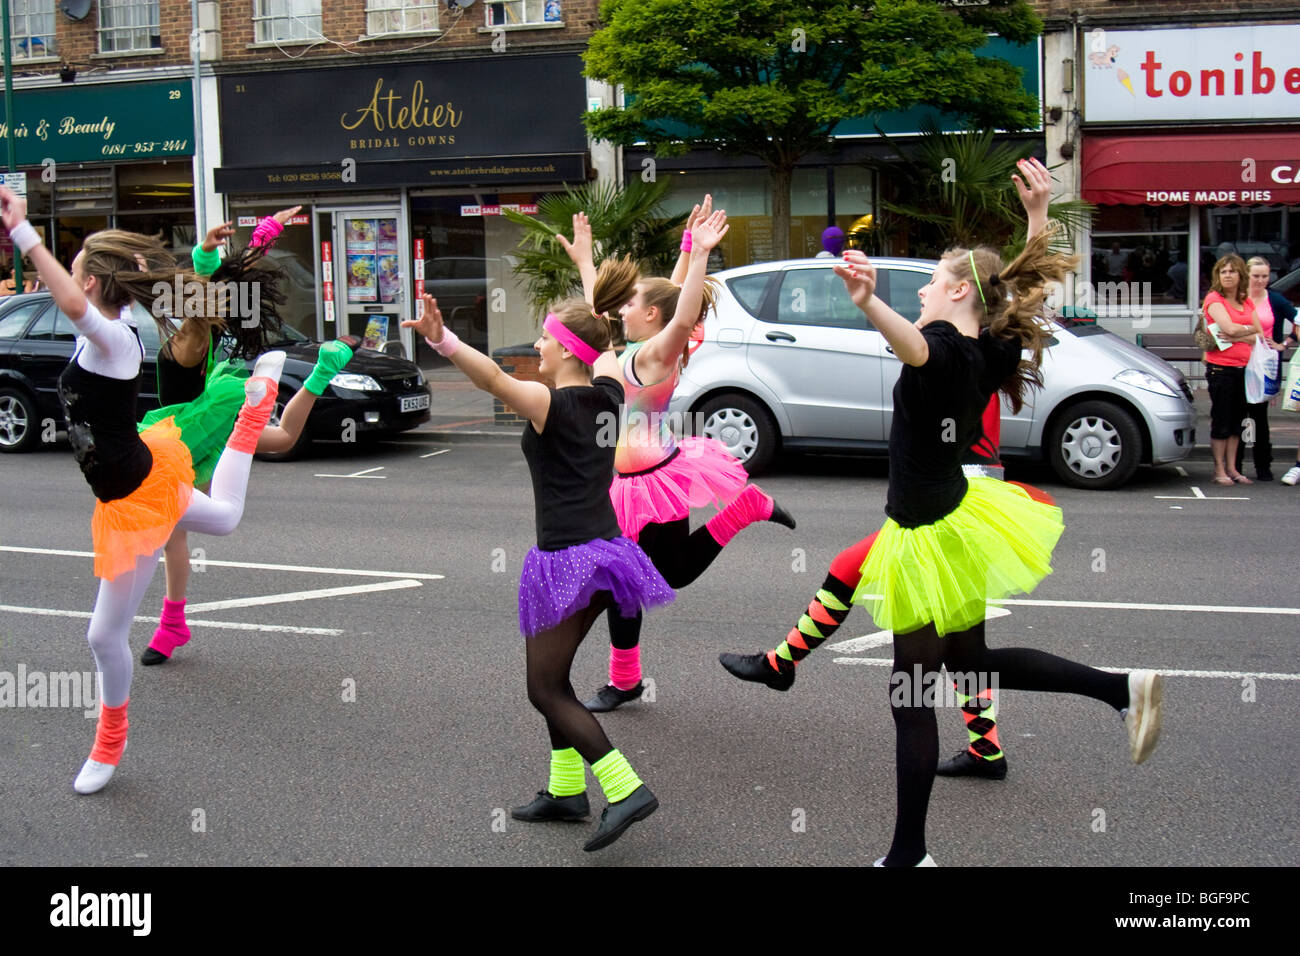 Dancers from academy of dance and performing arts in Borehamwood carnival parade, Borehamwood, Hertfordshire, UK - Stock Image